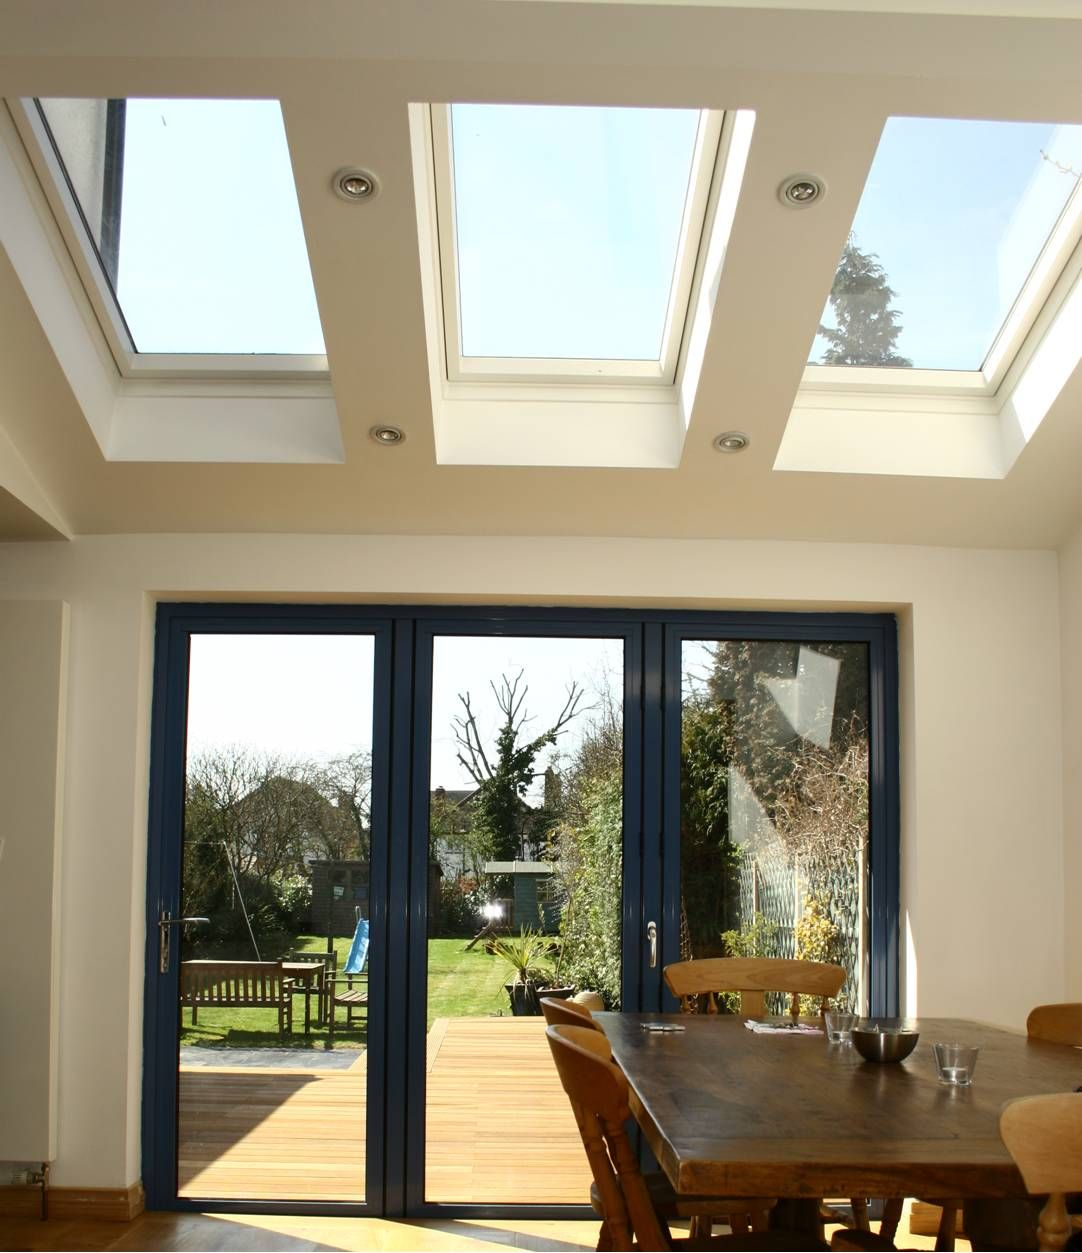 bifold doors - Google Search | House | Pinterest | Google images ...